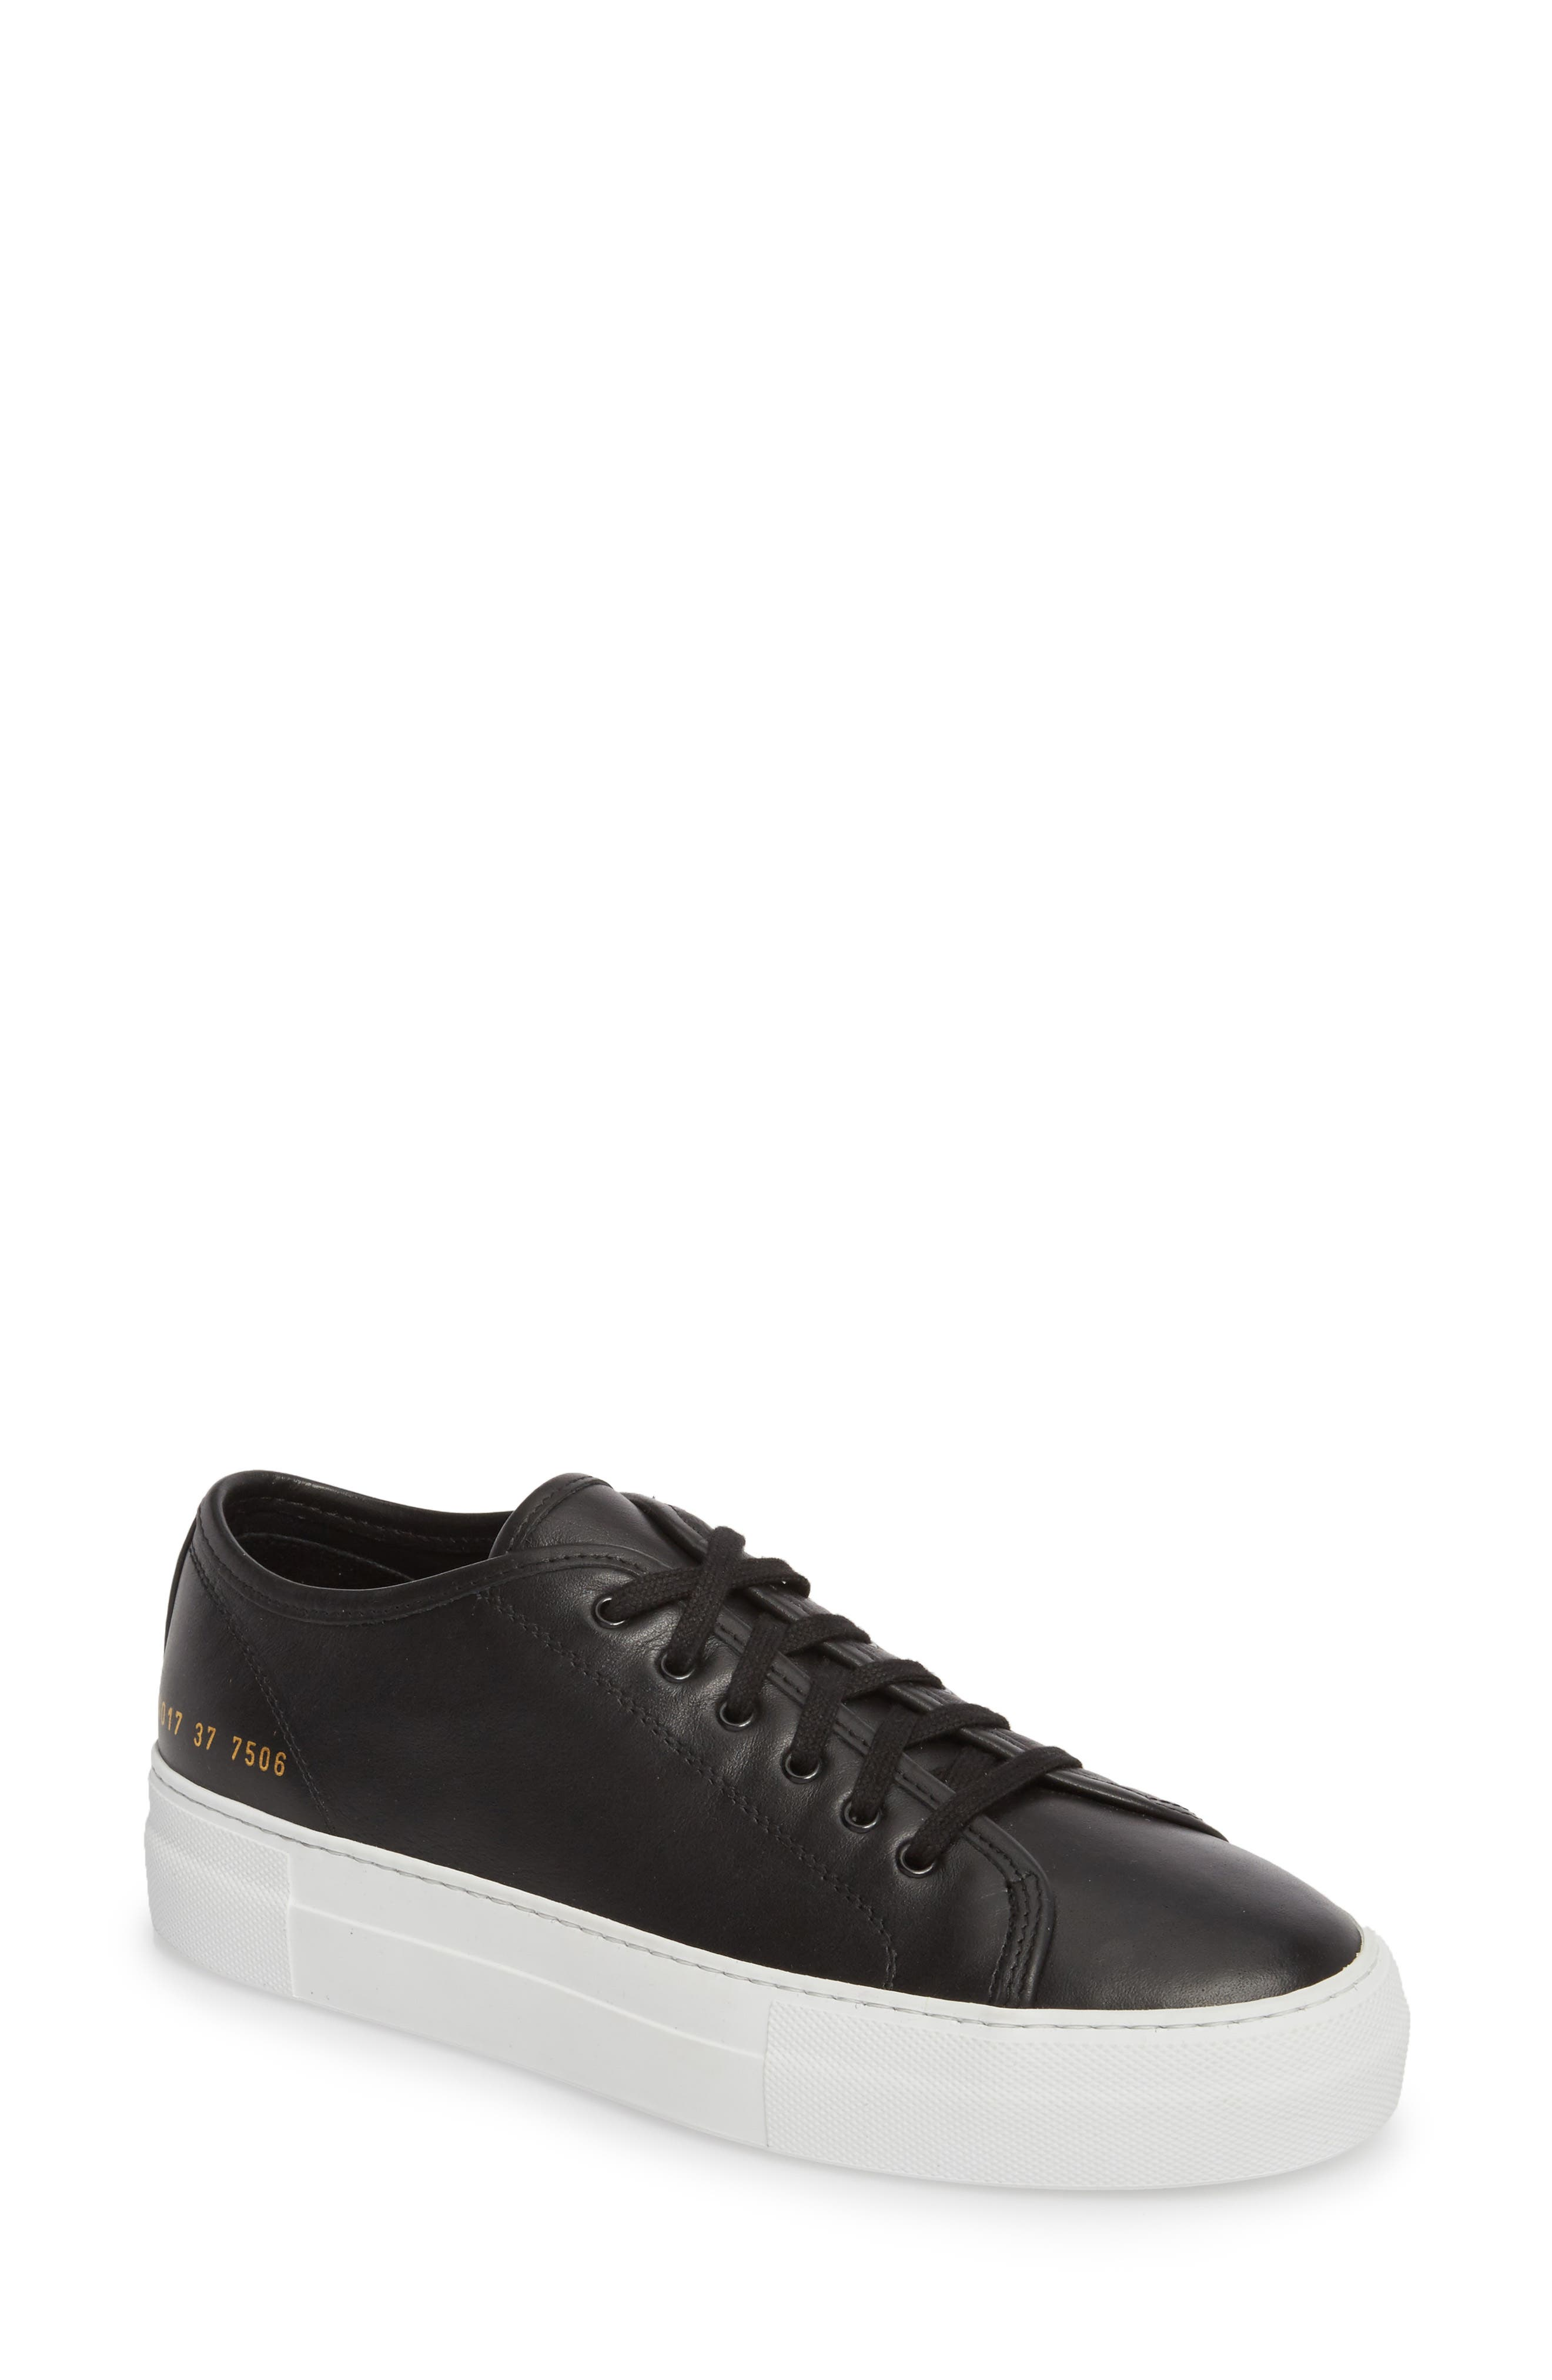 COMMON PROJECTS Tournament Low Top Sneaker, Main, color, BLACK